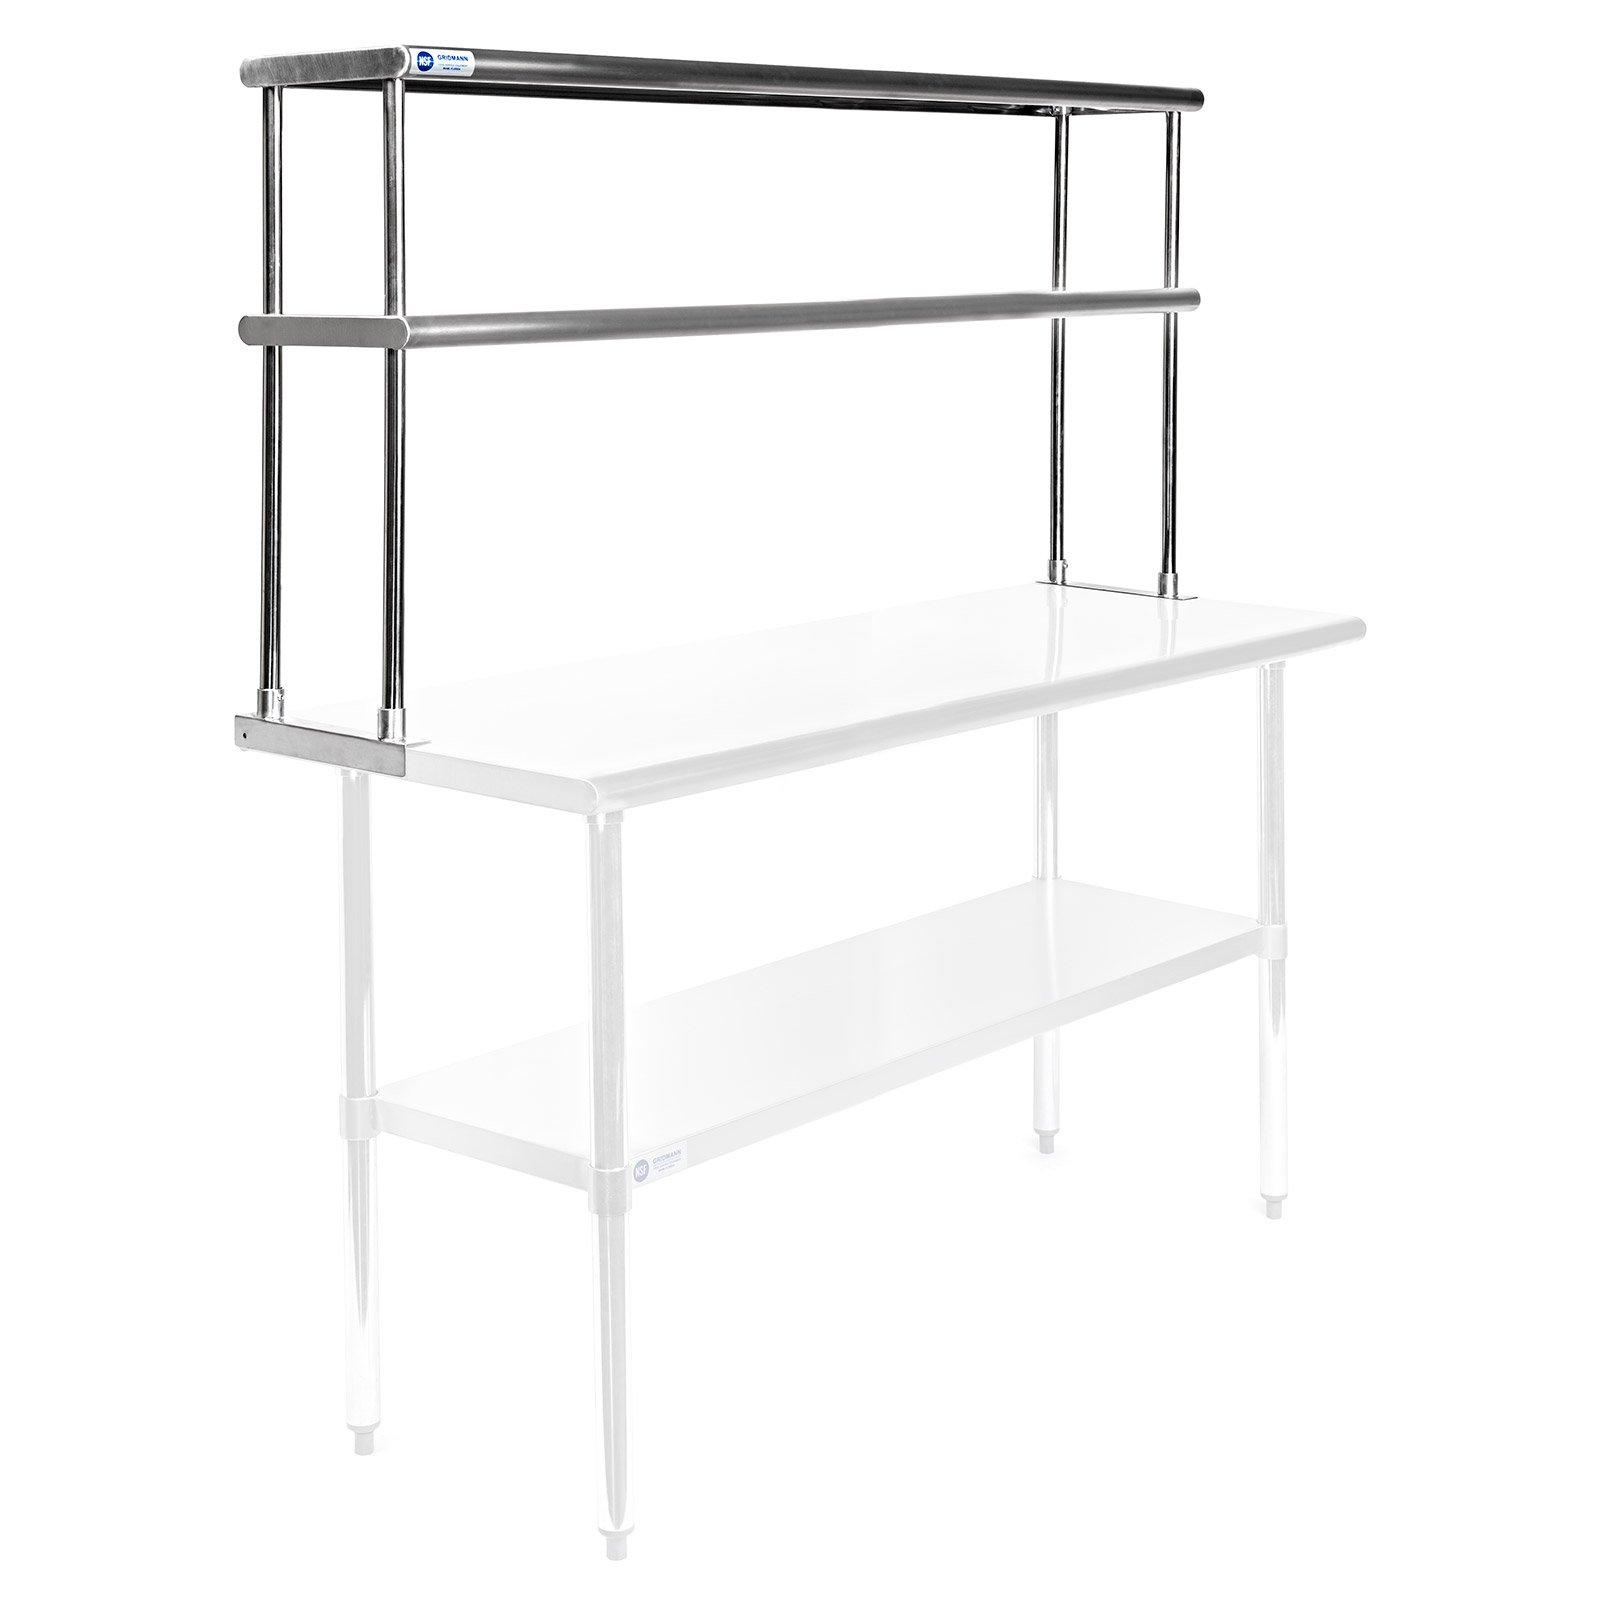 GRIDMANN NSF Stainless Steel Commercial 2 Tier Double Overshelf - 60 in. x 12 in. - for Kitchen Prep & Work Table